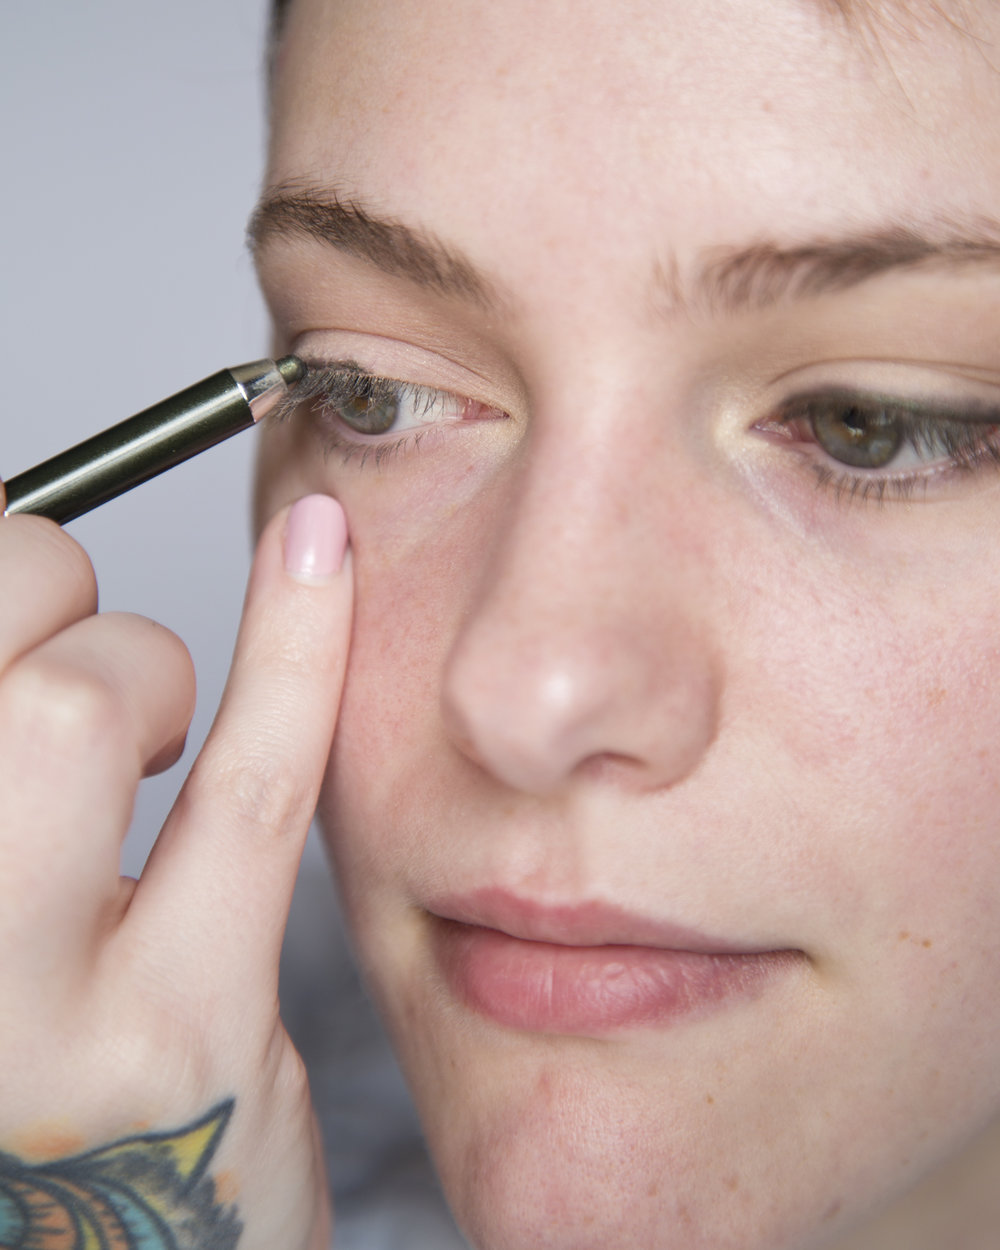 Wanted to include this so you could see how I was applying my eyeliner. If you struggle with shakey hands or have a hard time getting a straight line rest your pinky or the side of your hand on your face to stabilize your hand. This is one of the best makeup tips that I ever received and has saved me so much frustration so you'll see me do it multiple times.